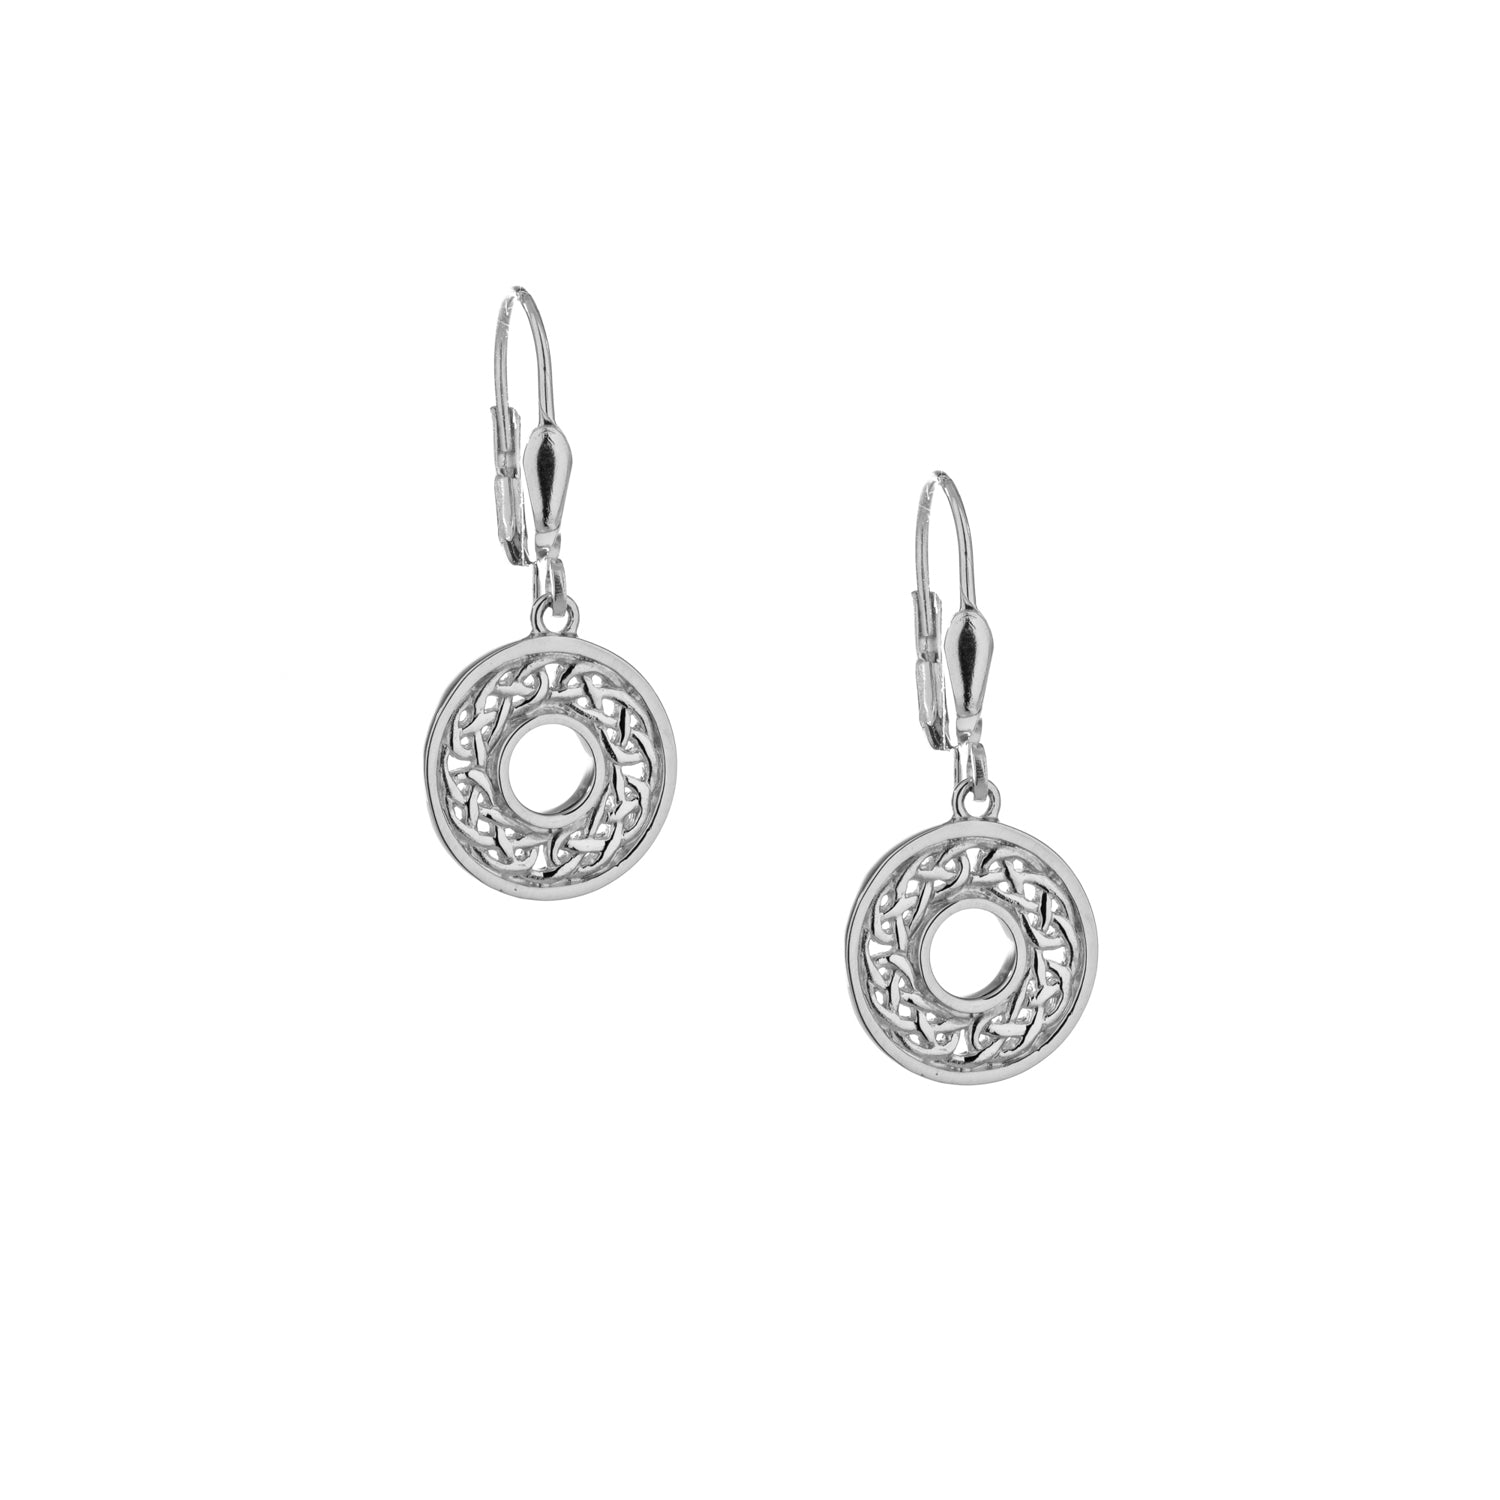 Earrings Love Knot Earrings from welch and company jewelers near syracuse ny